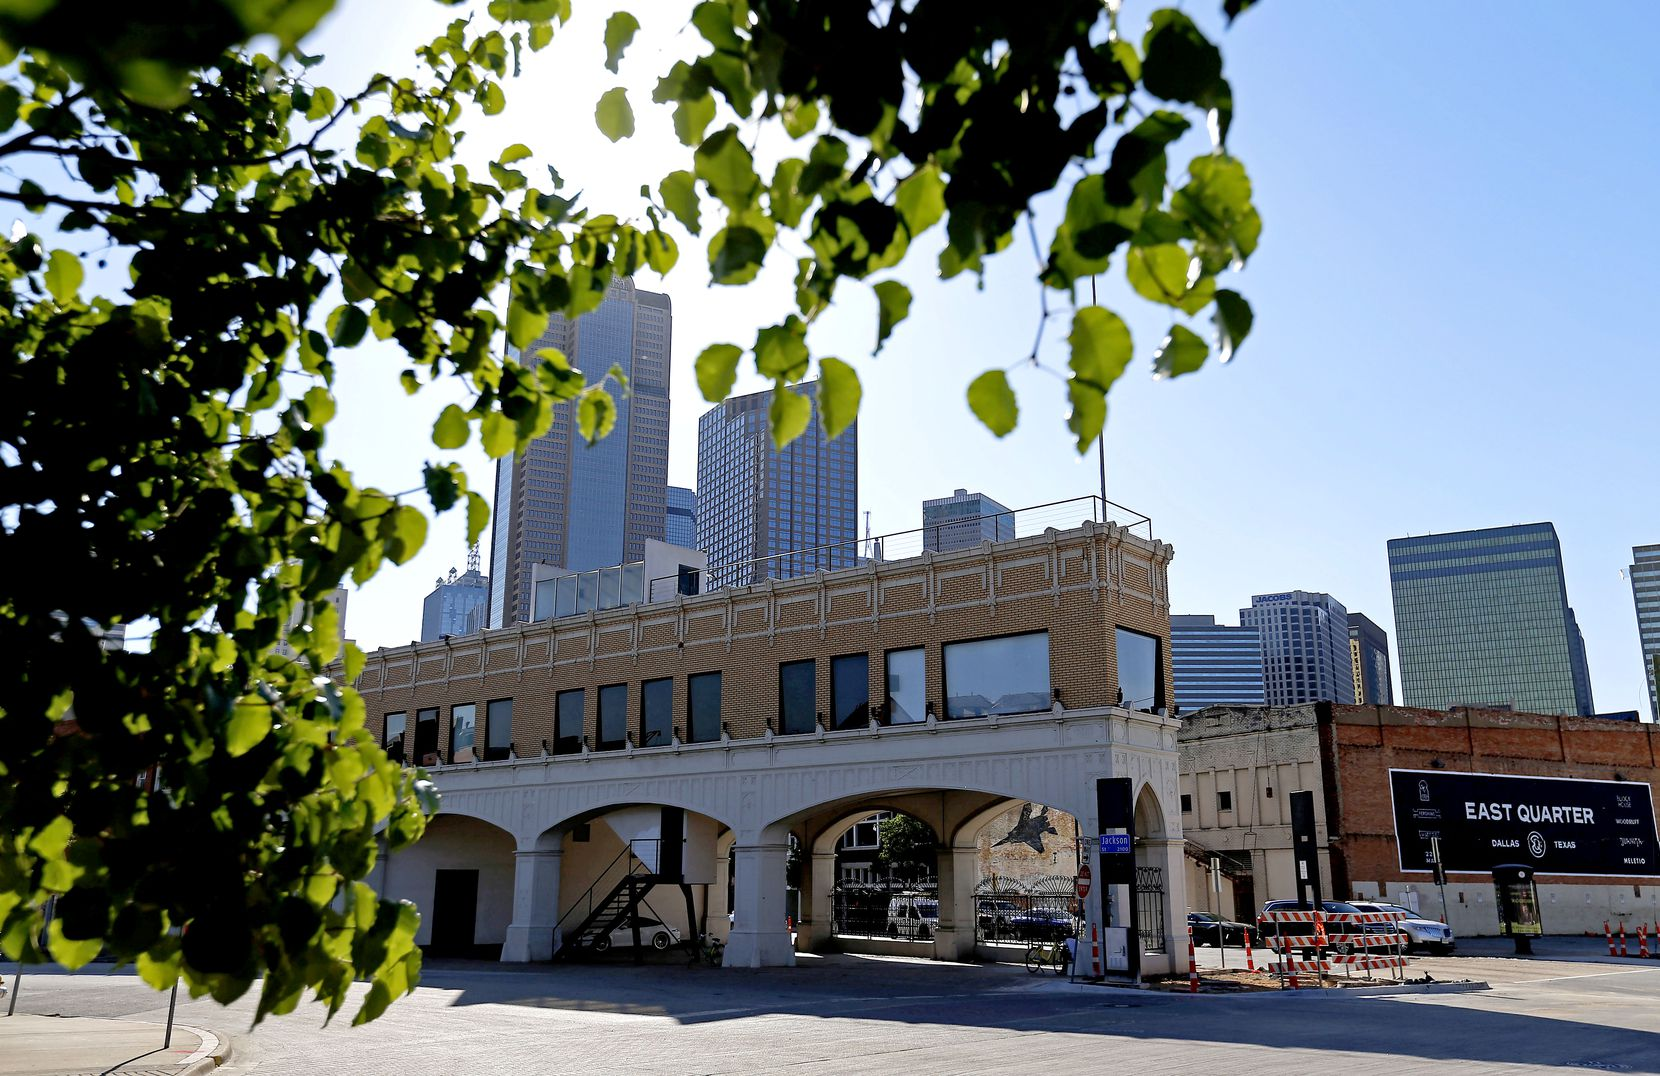 The original Magnolia Oil building (left), and a sign promoting the East Quarter redevelopment project are shown east of the downtown skyline as seen from South Cesar Chavez Boulevard in Dallas, Thursday, May 17, 2018.